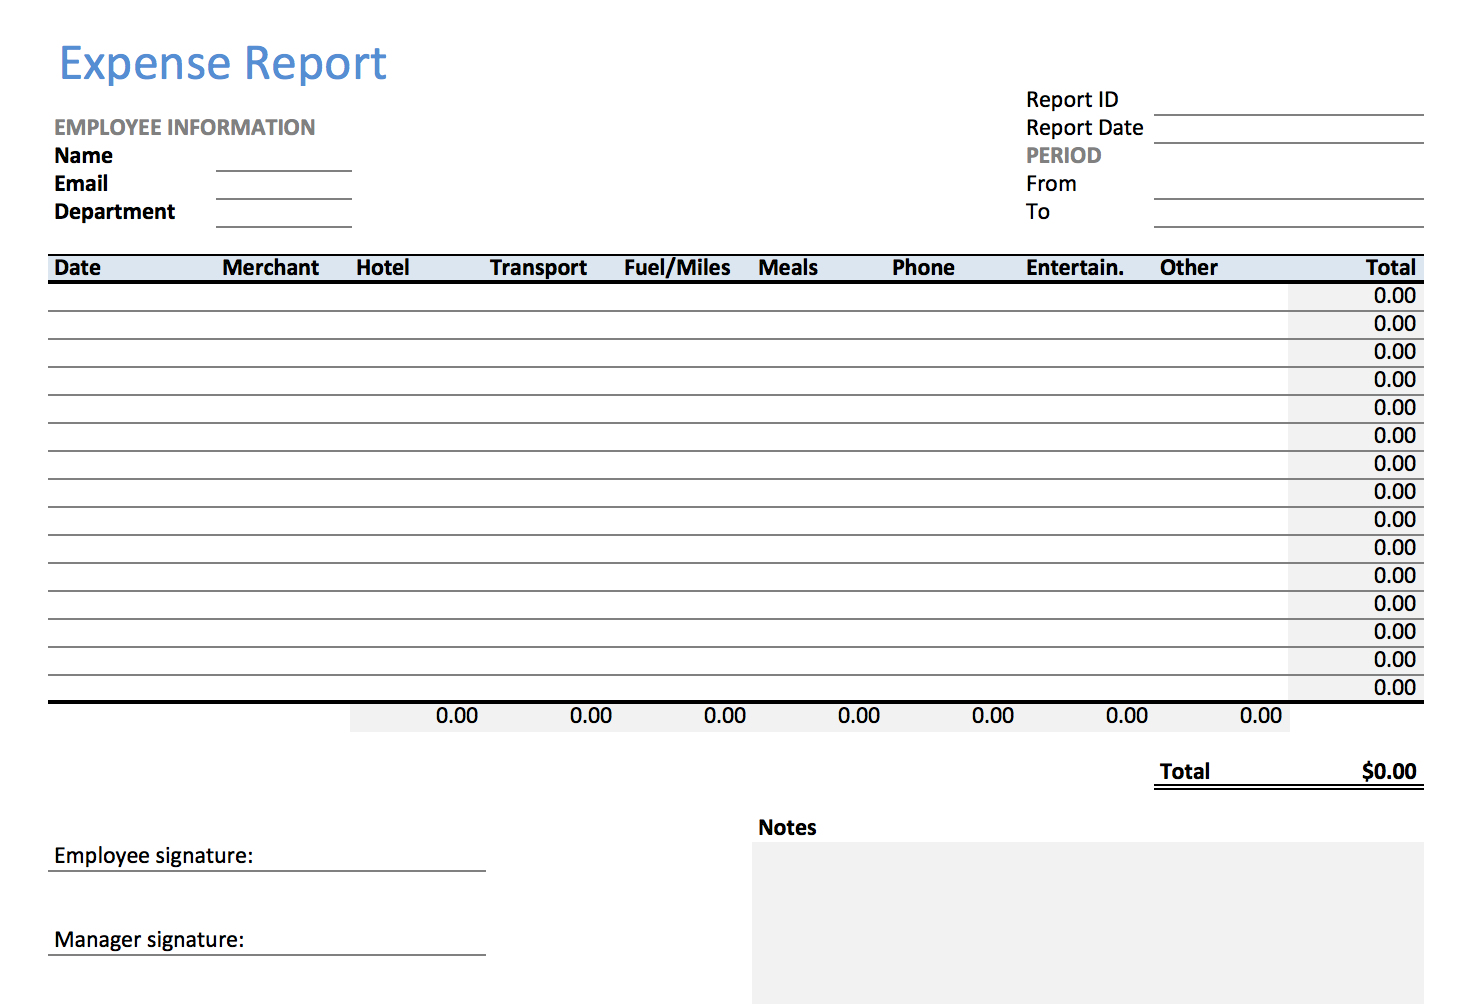 free expense report template for small business beautiful expense